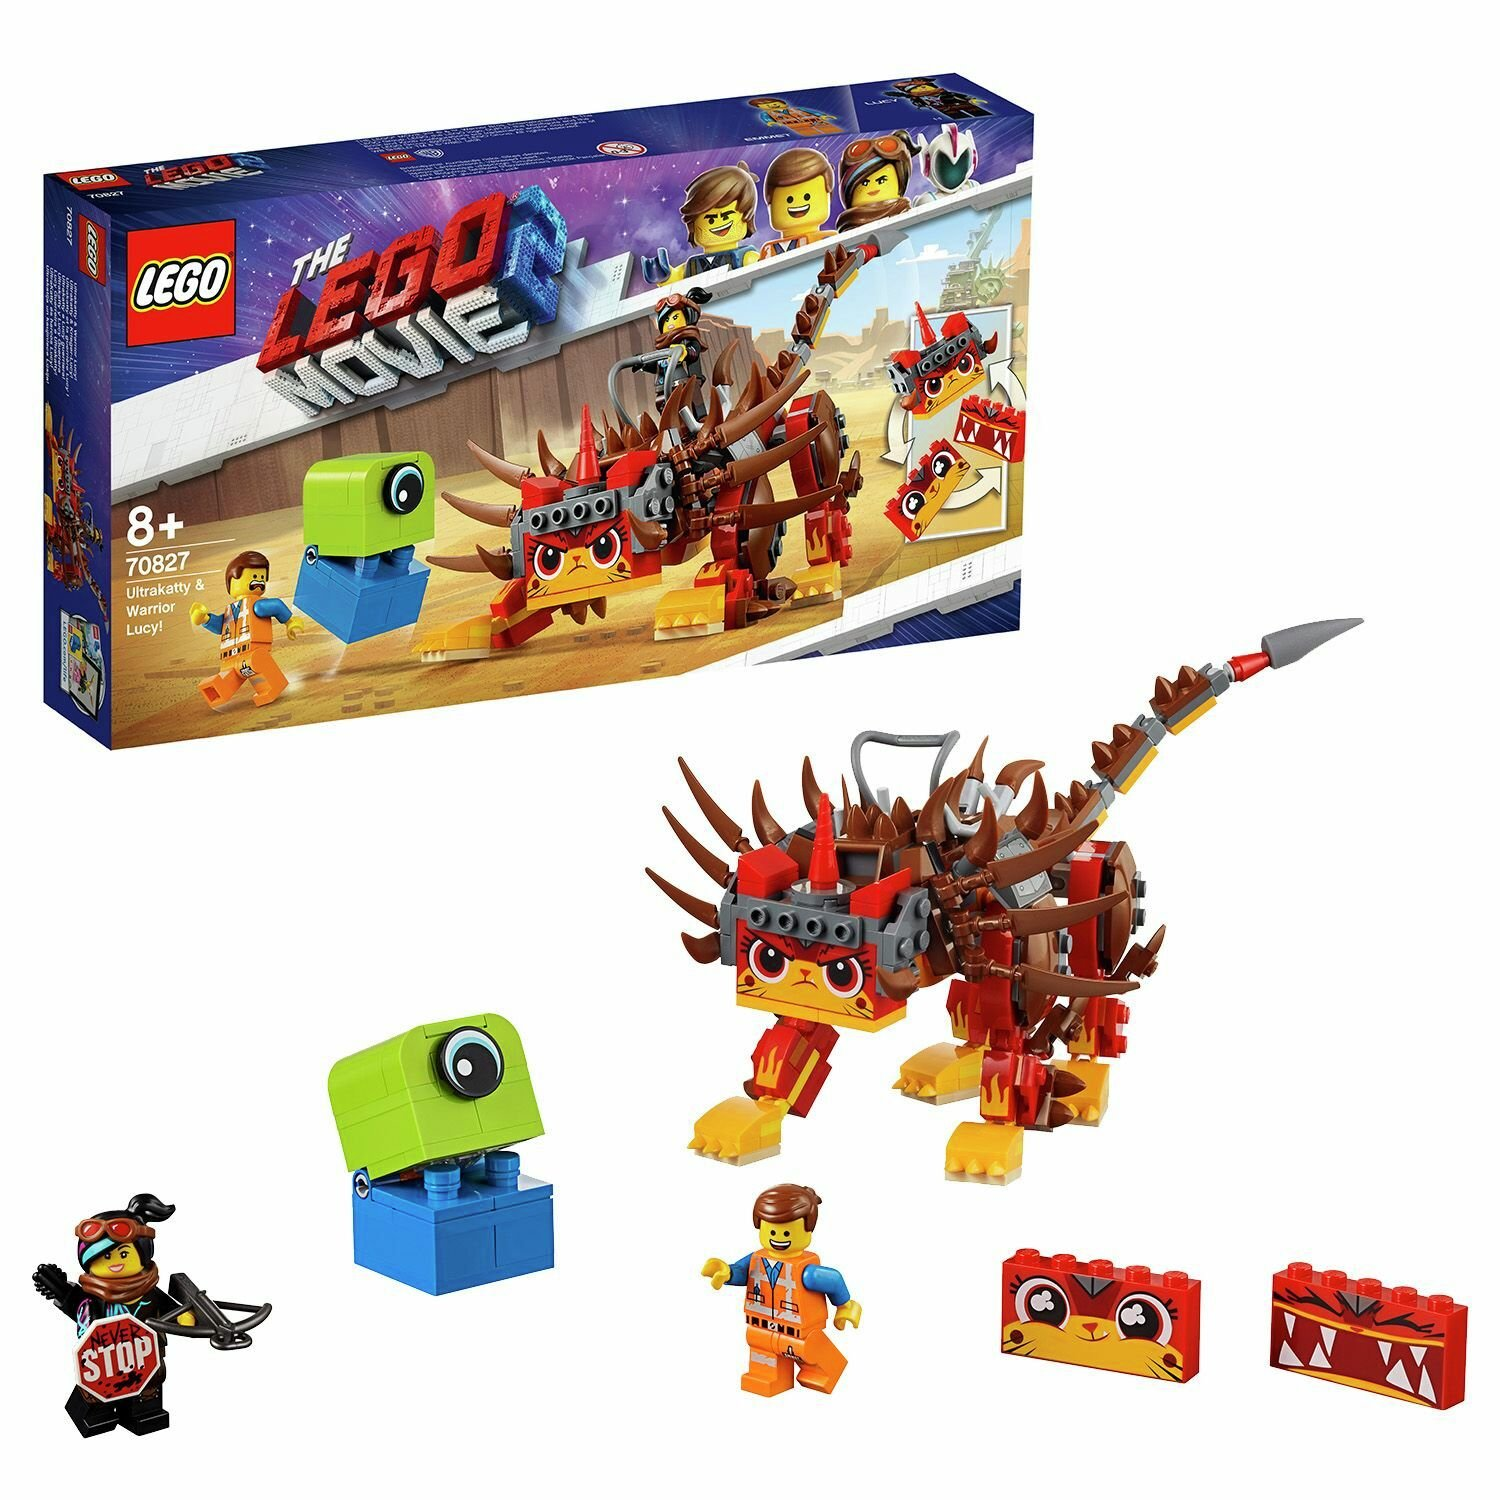 LEGO Movie 2 Ultrakatty & Warrior Lucy Playset - 70827